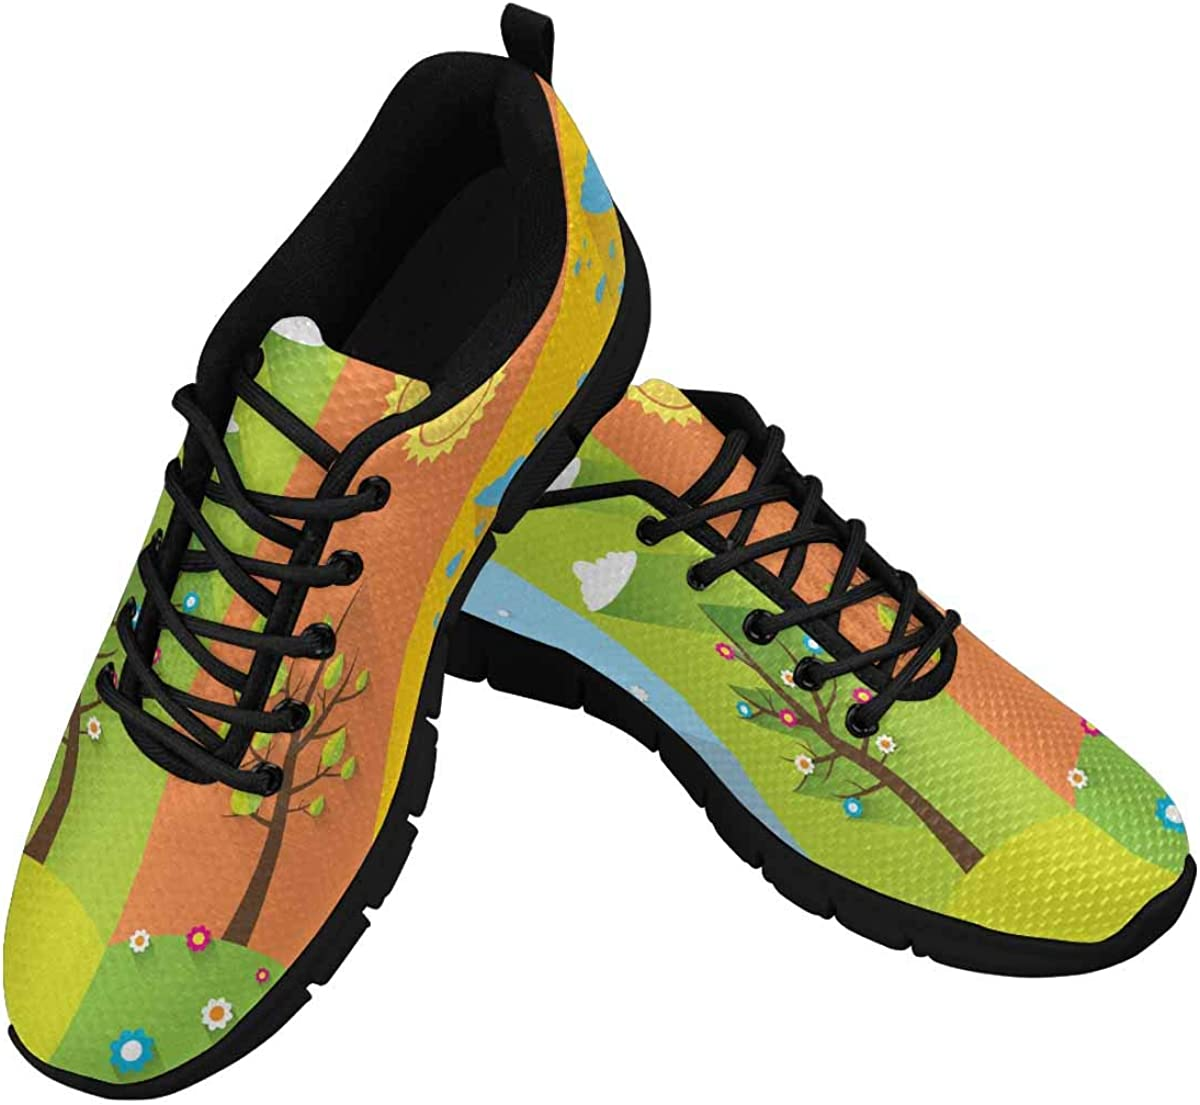 InterestPrint Trees in Four Seasons Lightweight Mesh Breathable Sneakers for Women